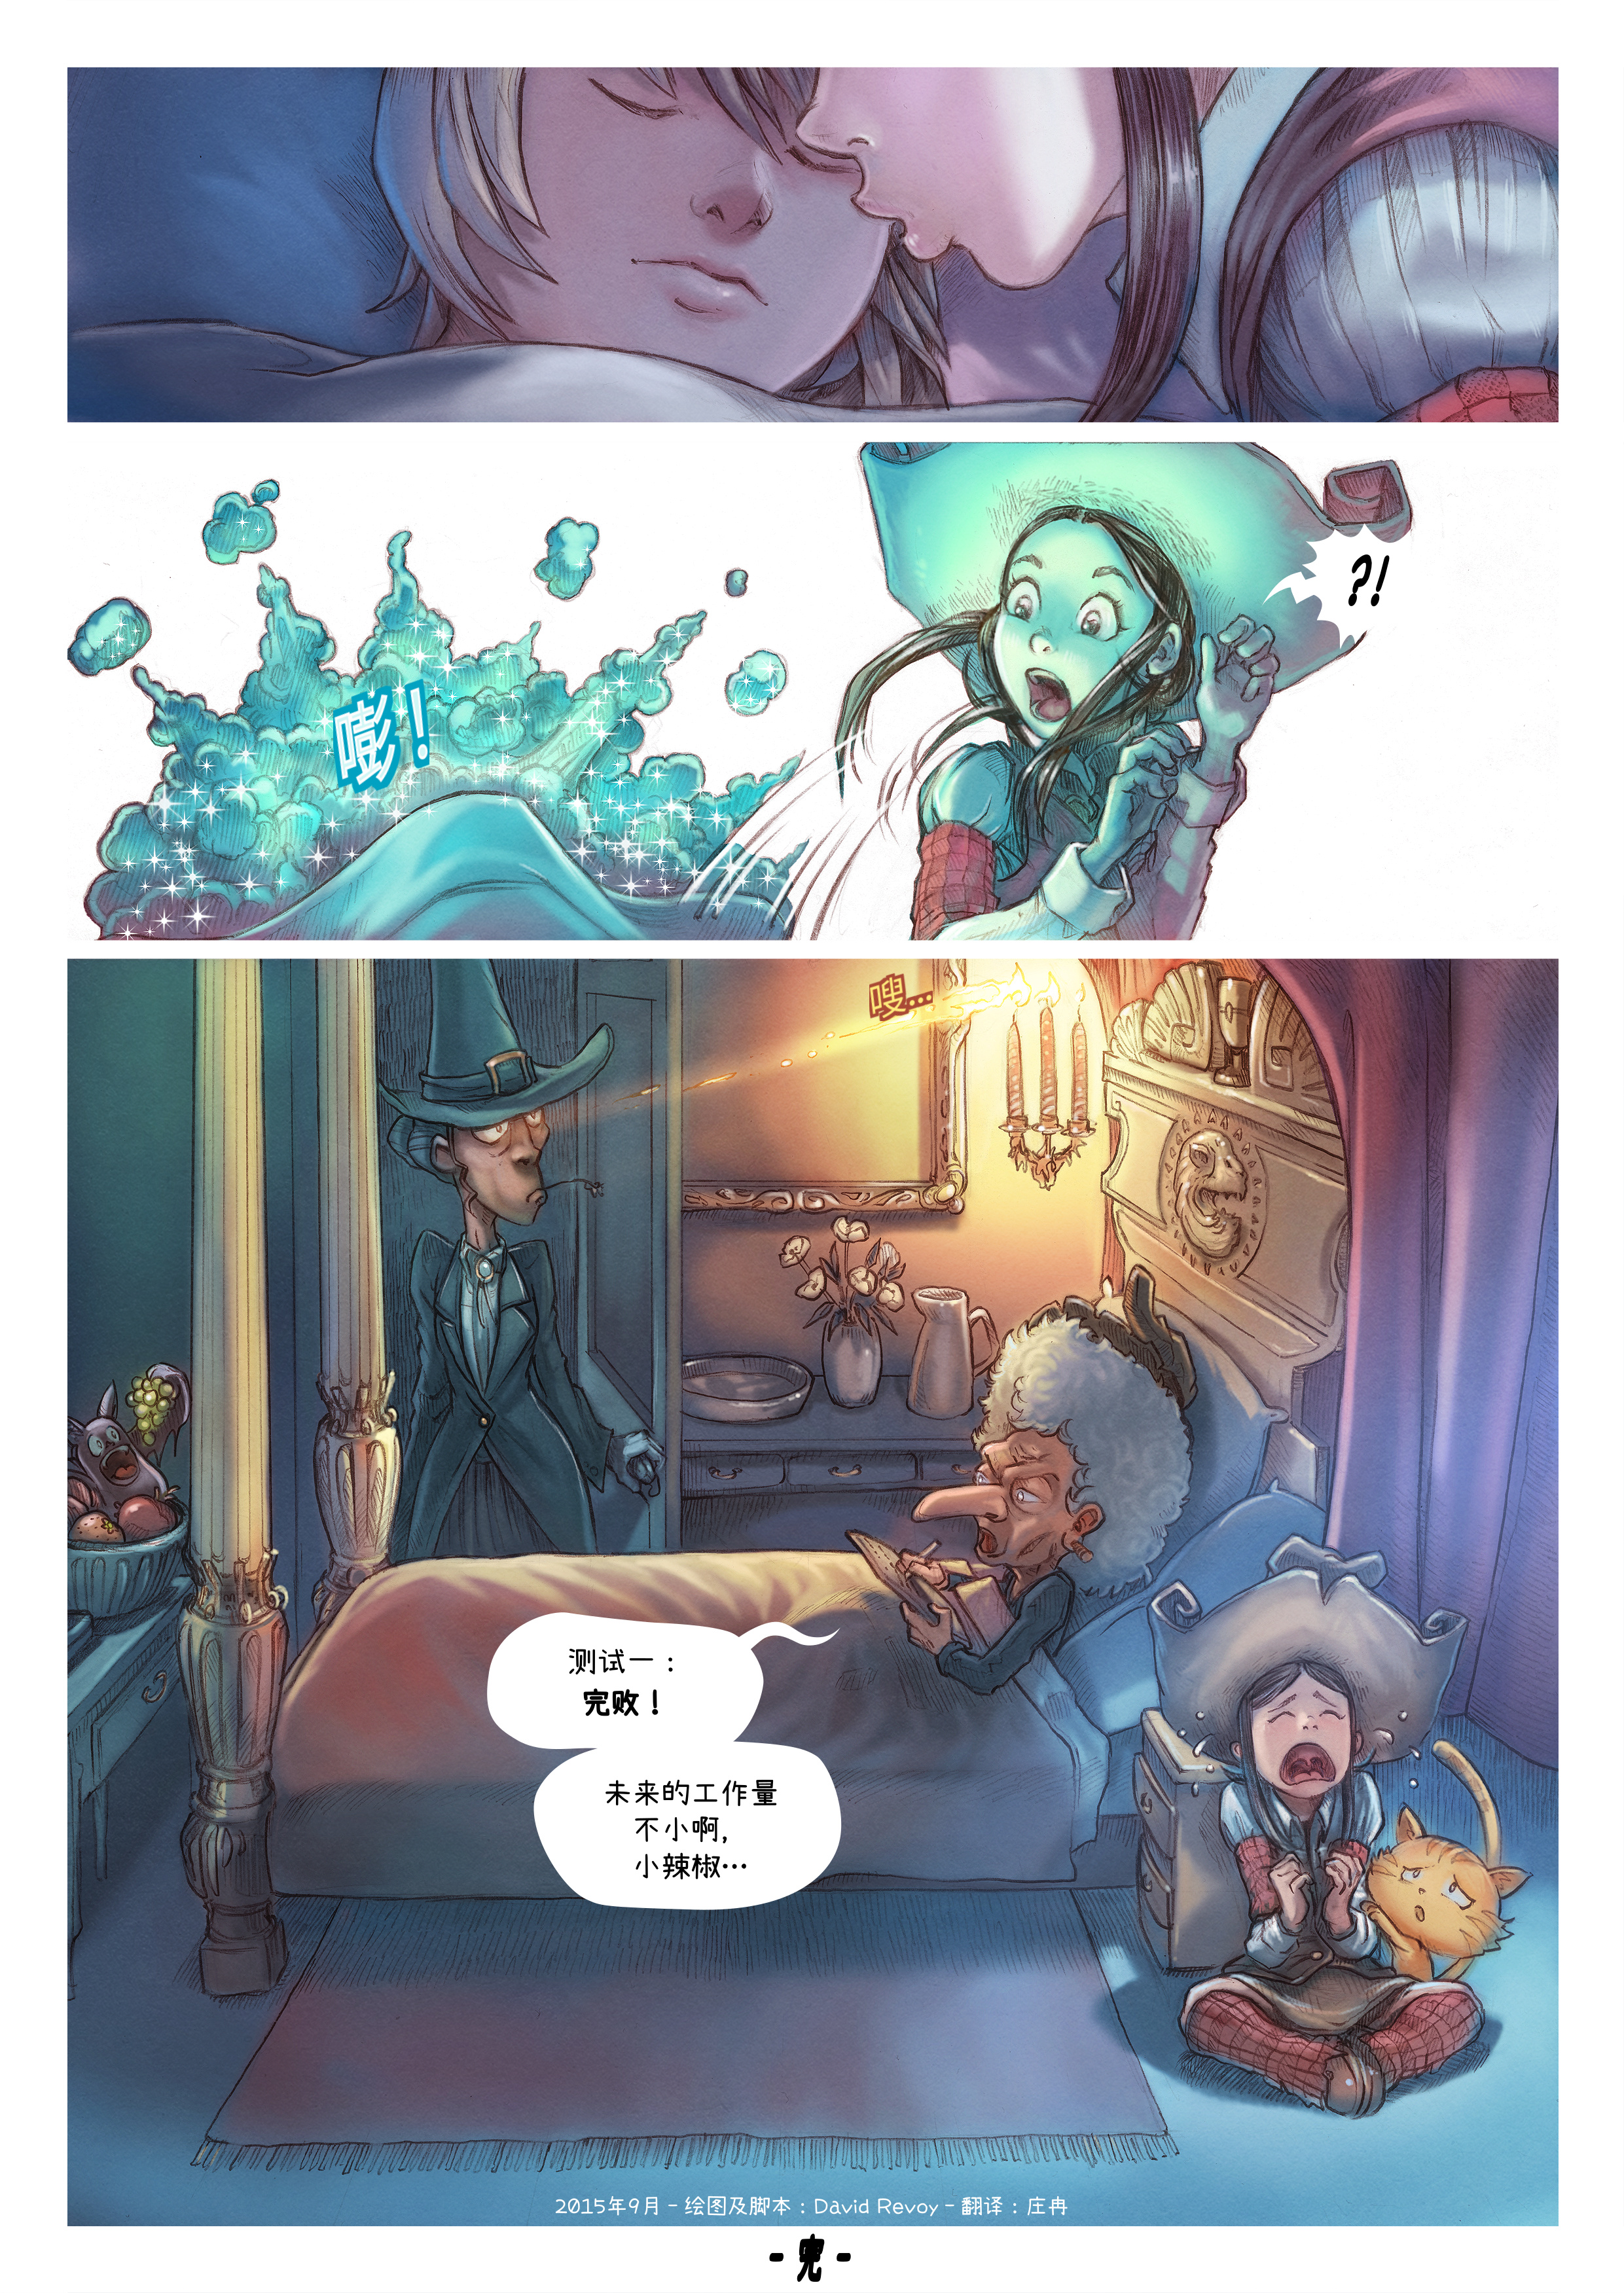 A webcomic page of Pepper&Carrot, 漫画全集 11 [cn], 页面 6